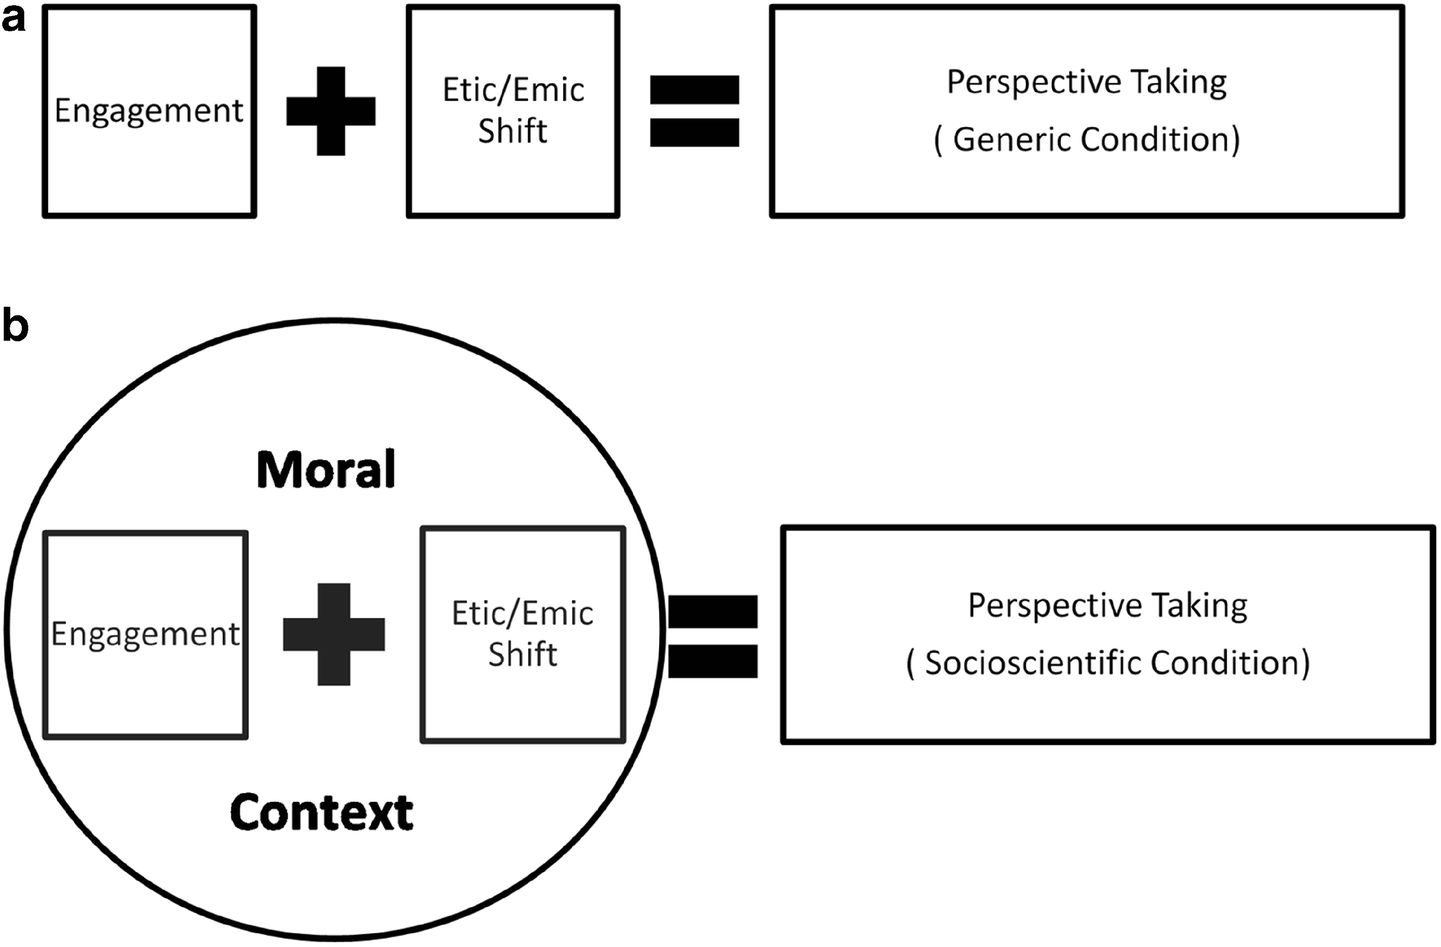 A Conceptual Analysis of Perspective Taking in Support of